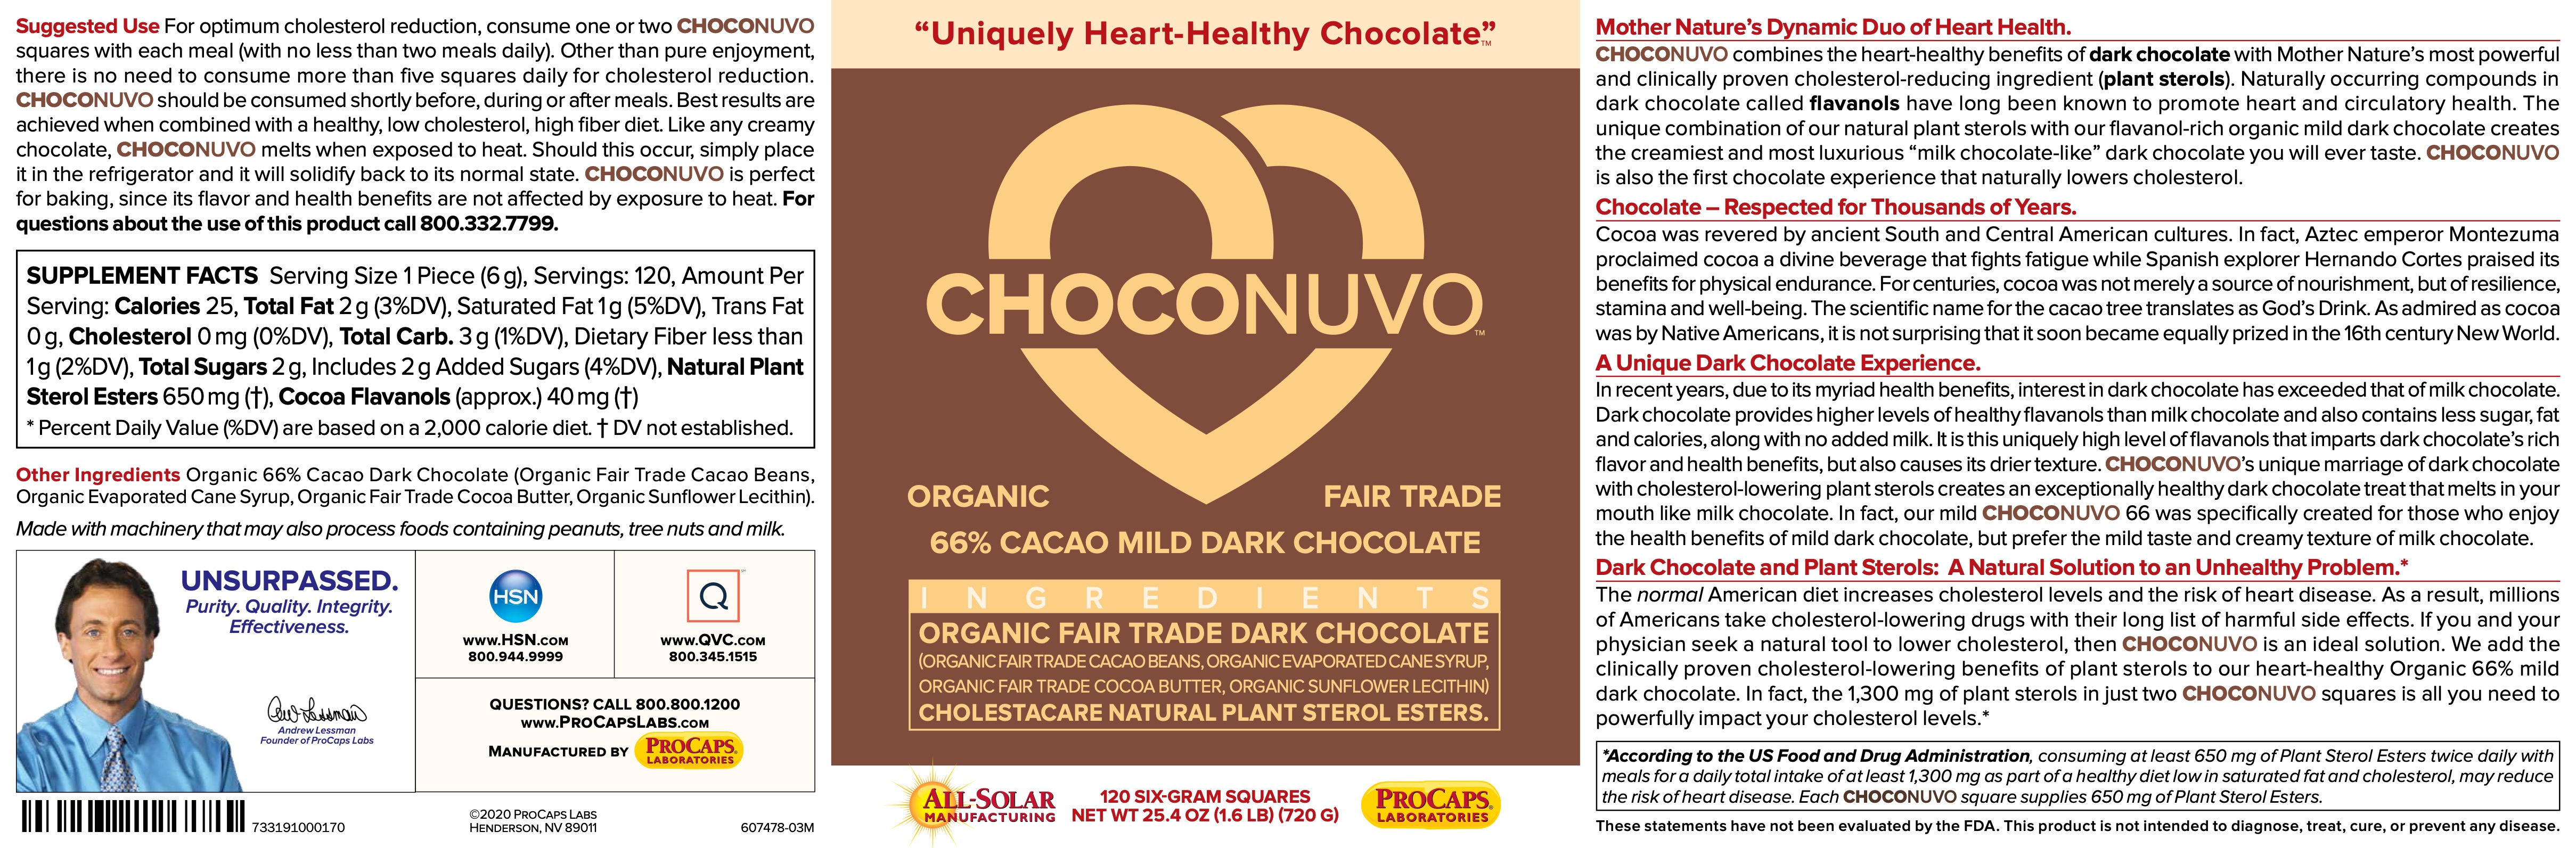 ChocoNuvo-66-Cacao-Mild-Dark-Chocolate